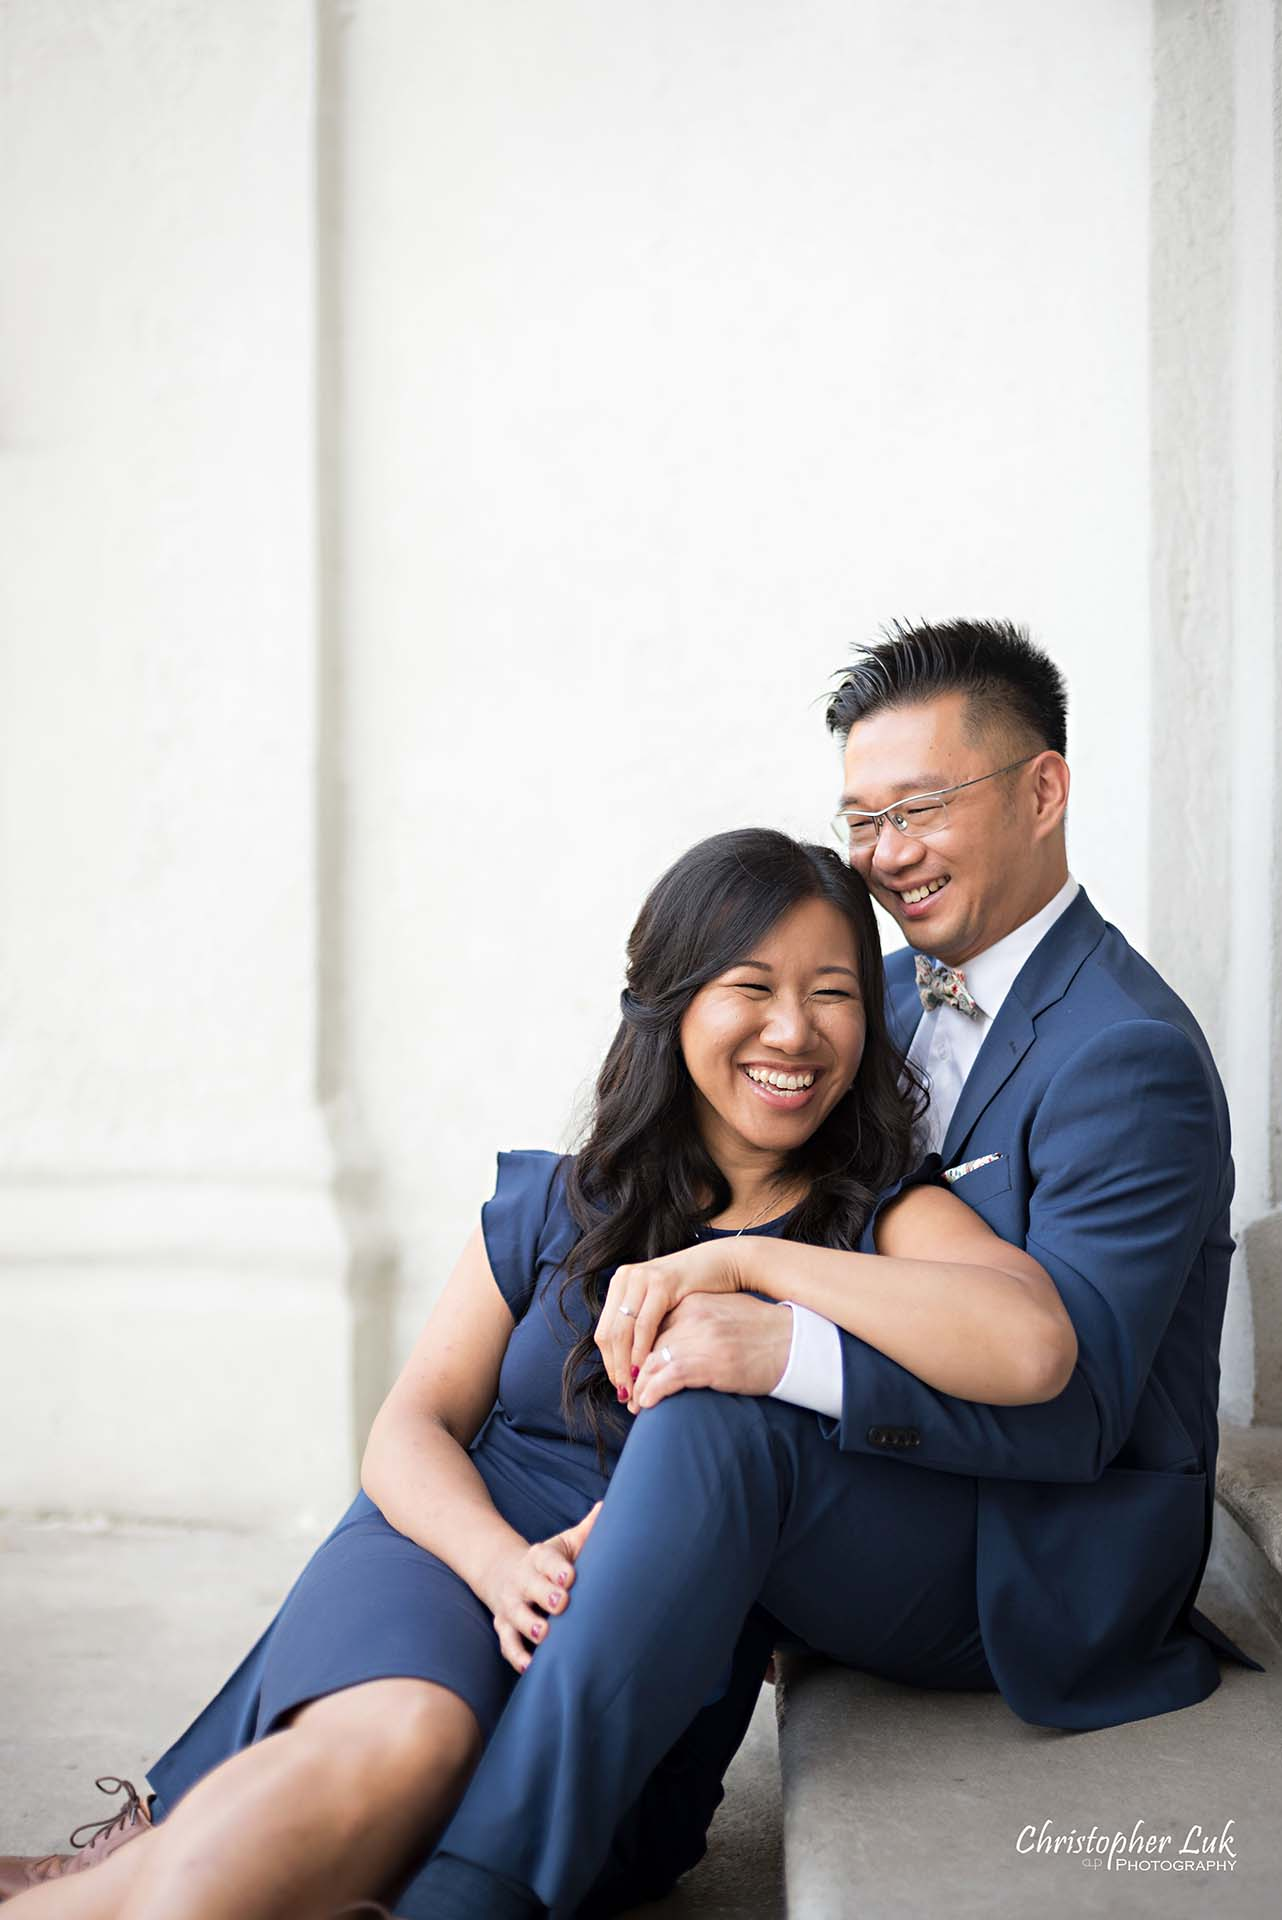 Christopher Luk Toronto Wedding Photographer - Engagement Photography - Sunnyside Pavilion Park Beach Boardwalk Toronto - Bride and Groom Natural Candid Photojournalistic Steps Staircase Hug Hold Laugh